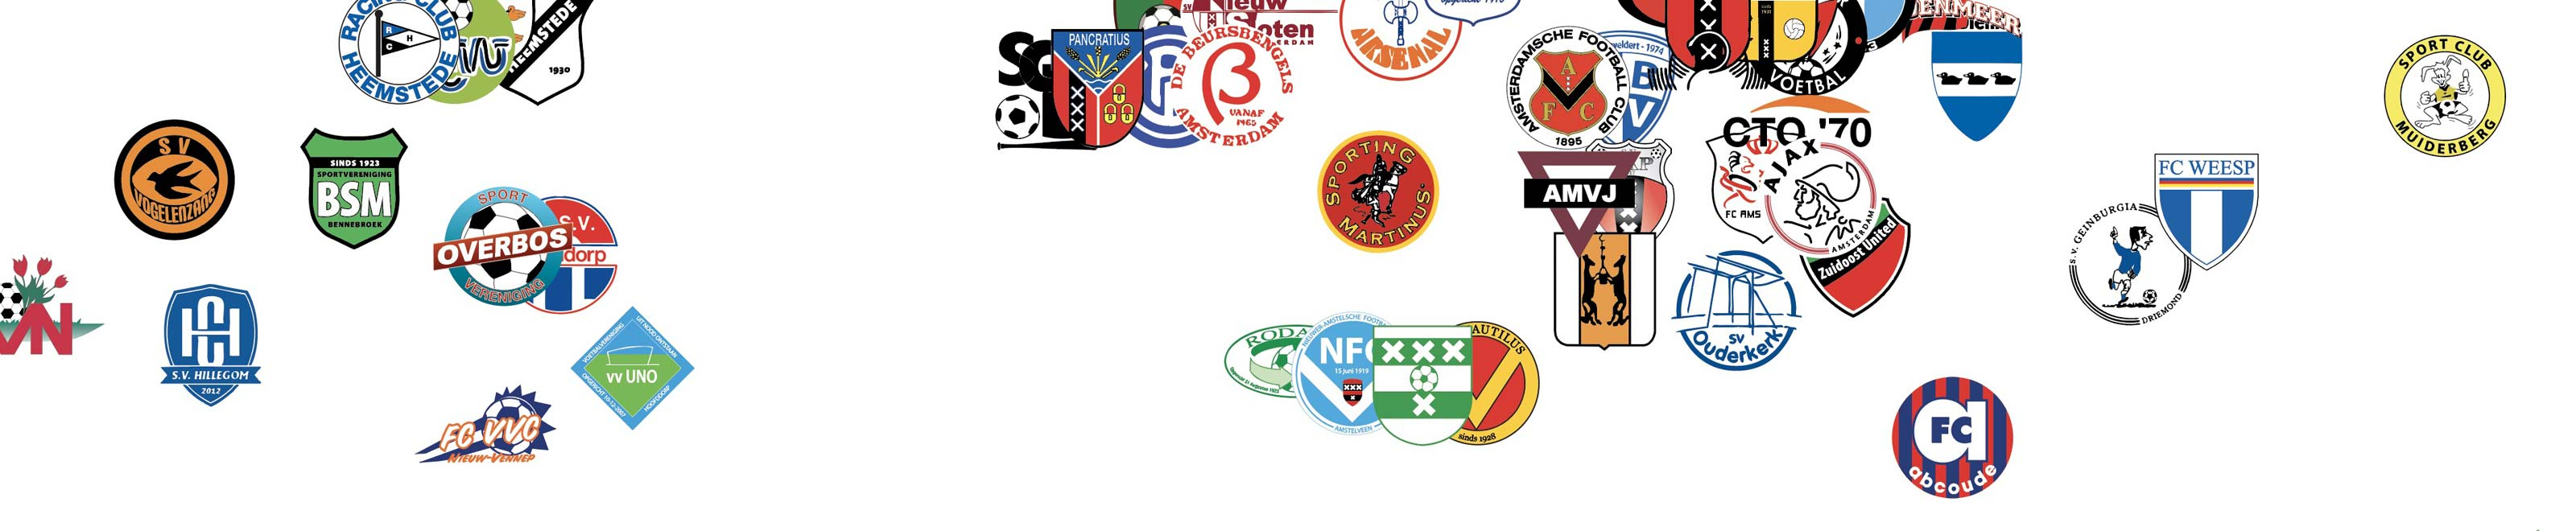 cropped poster Dutch football clubs with Amsterdam teams like Ajax